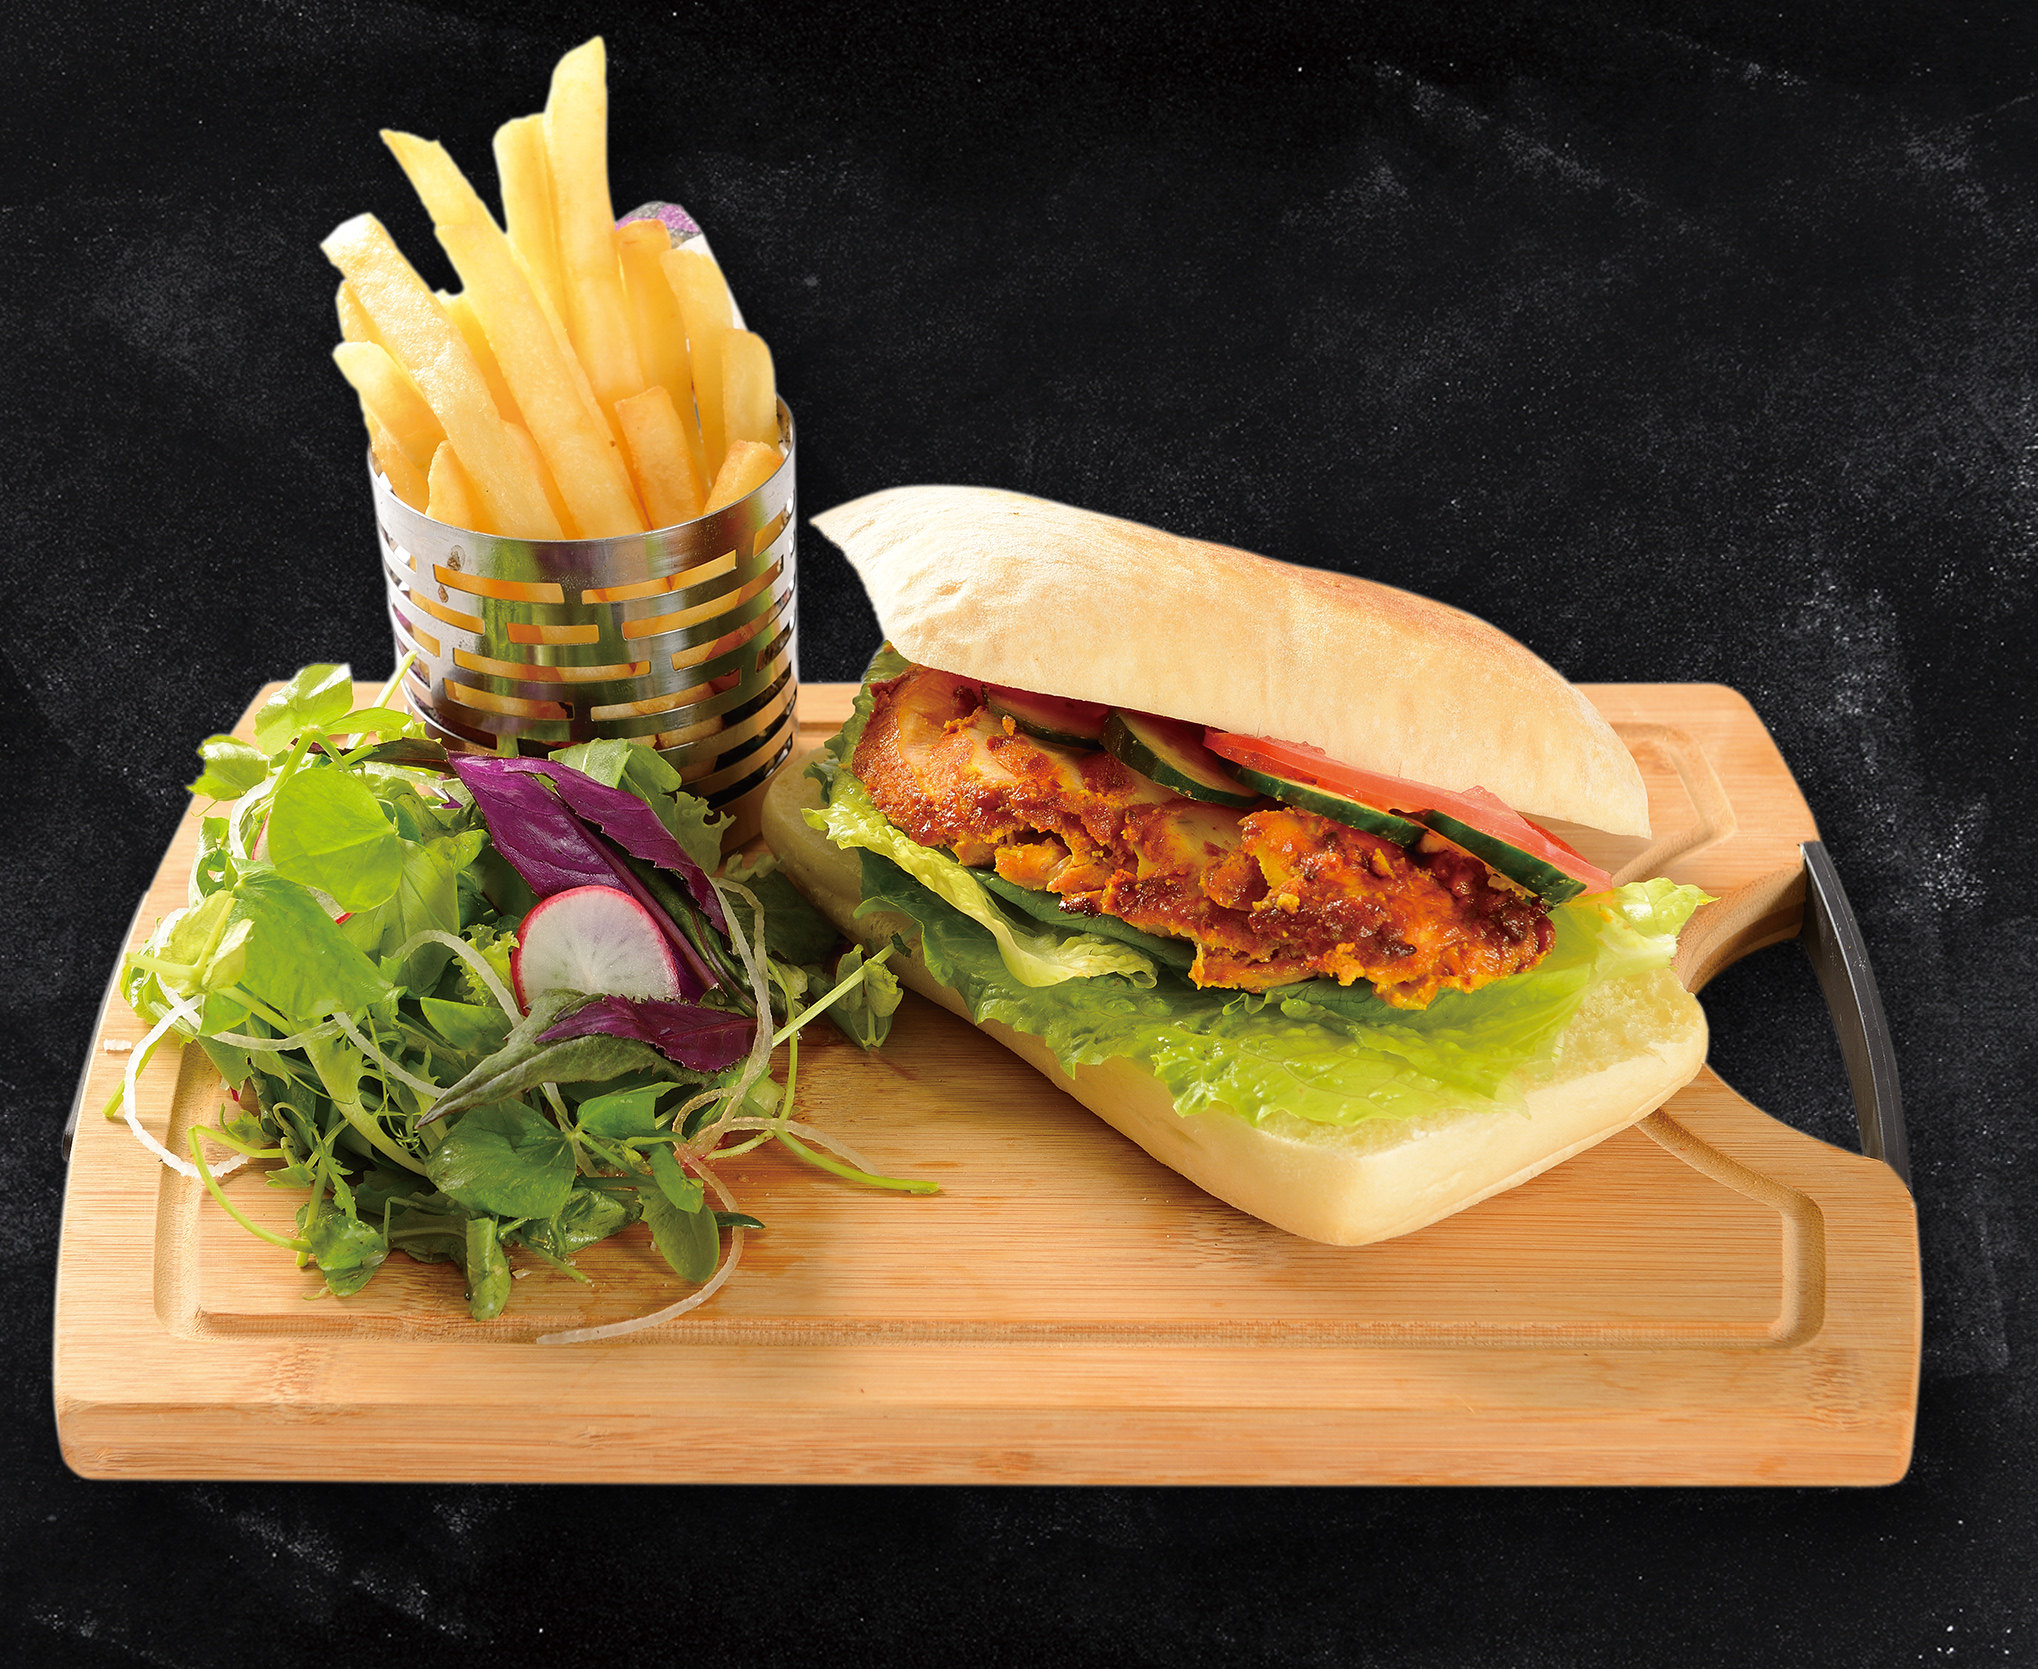 <b>Grilled Chicken Tikka Sandwich</b><br/>